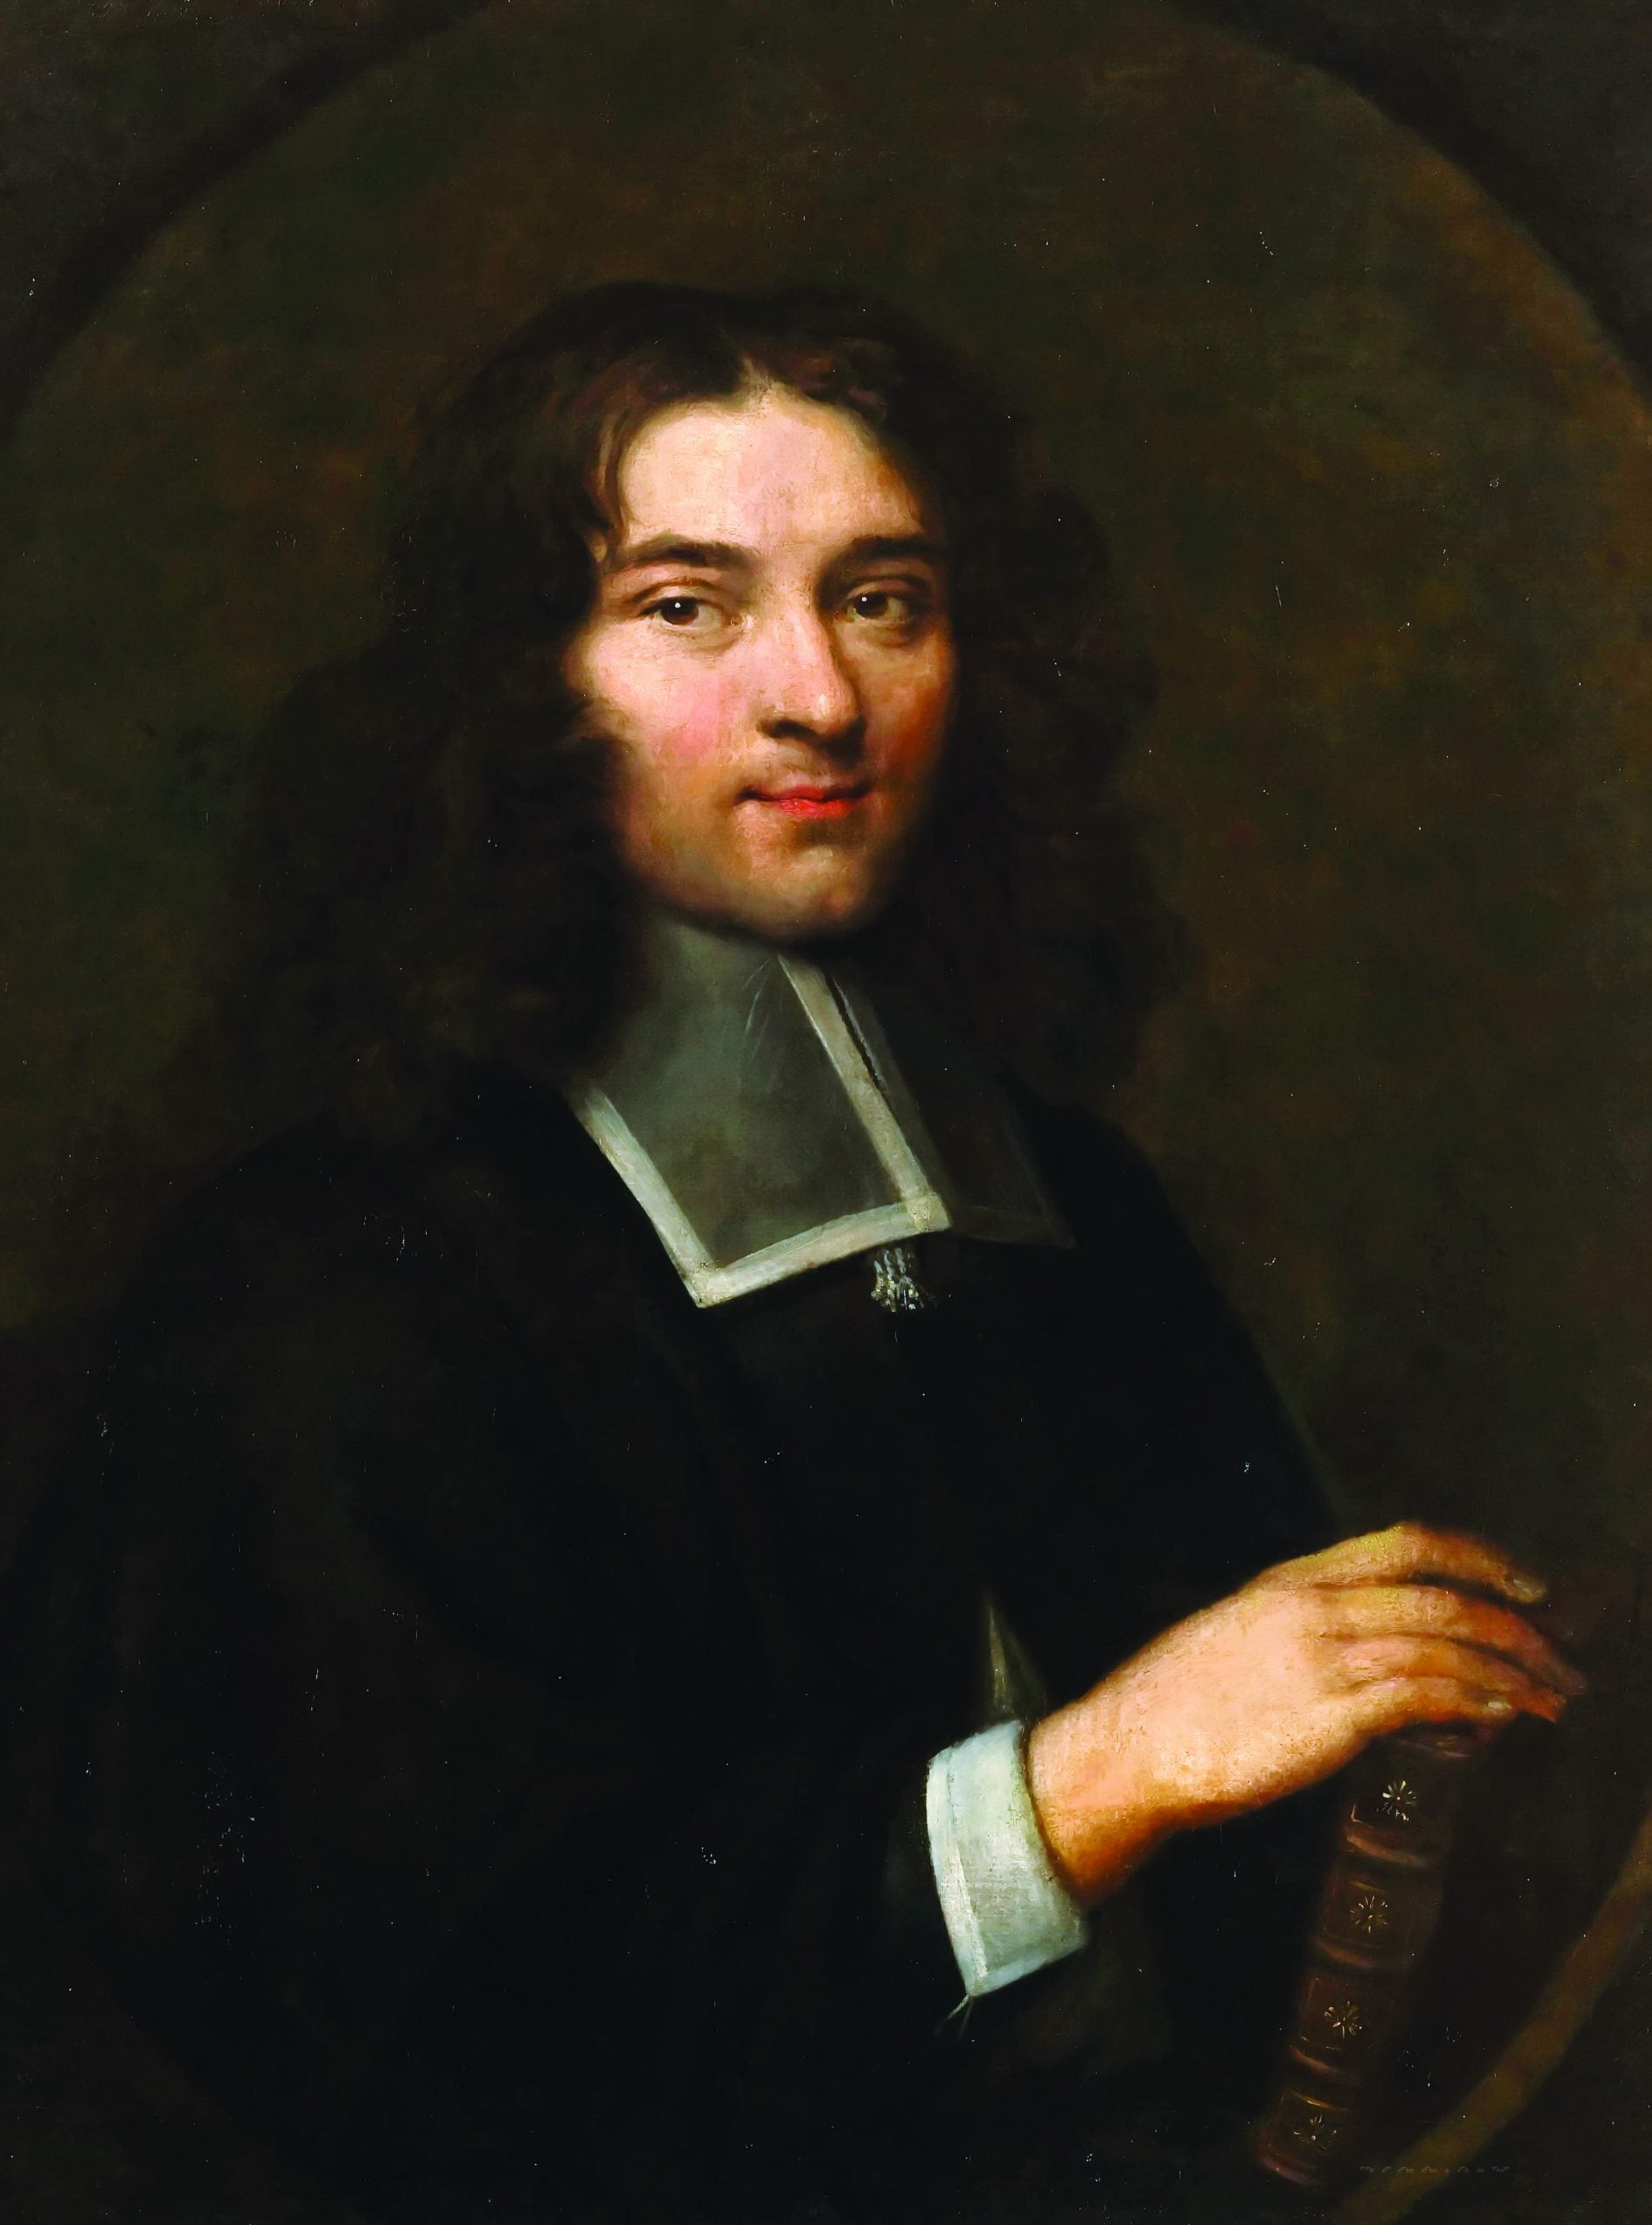 The tolerant philosopher: why Pierre Bayle is the forgotten figure of the Enlightenment